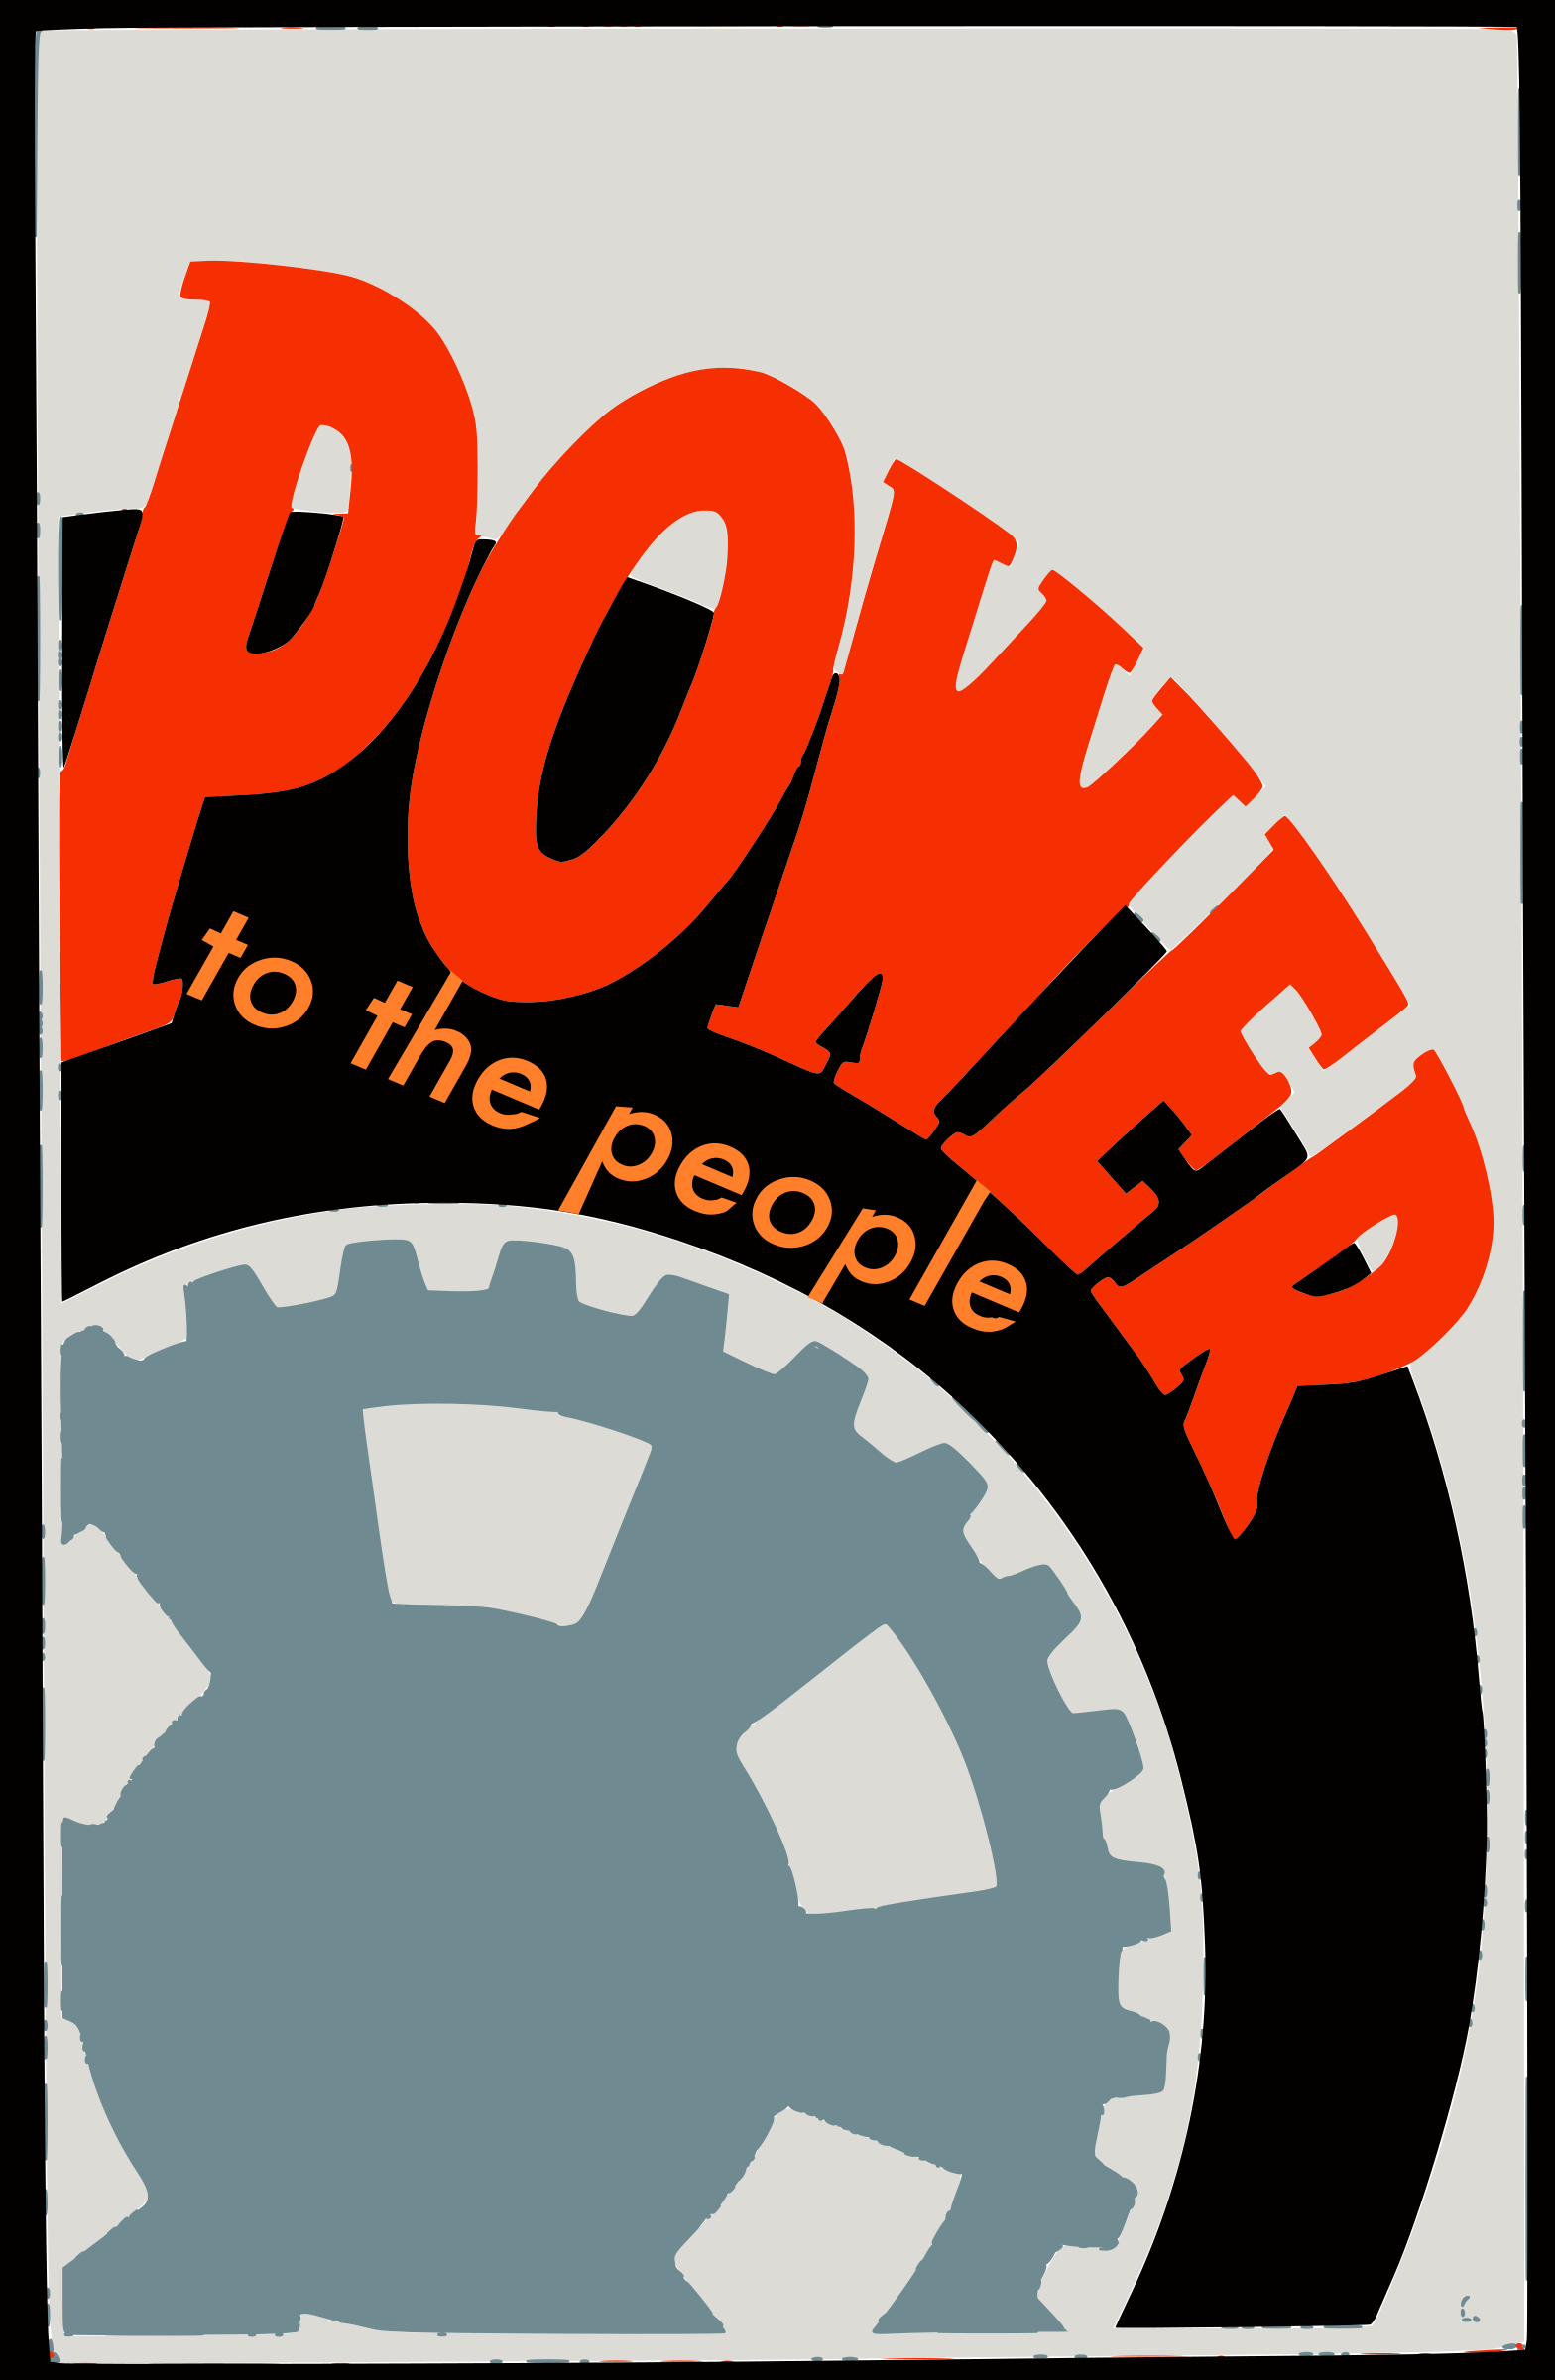 Power to the People by j4p4n